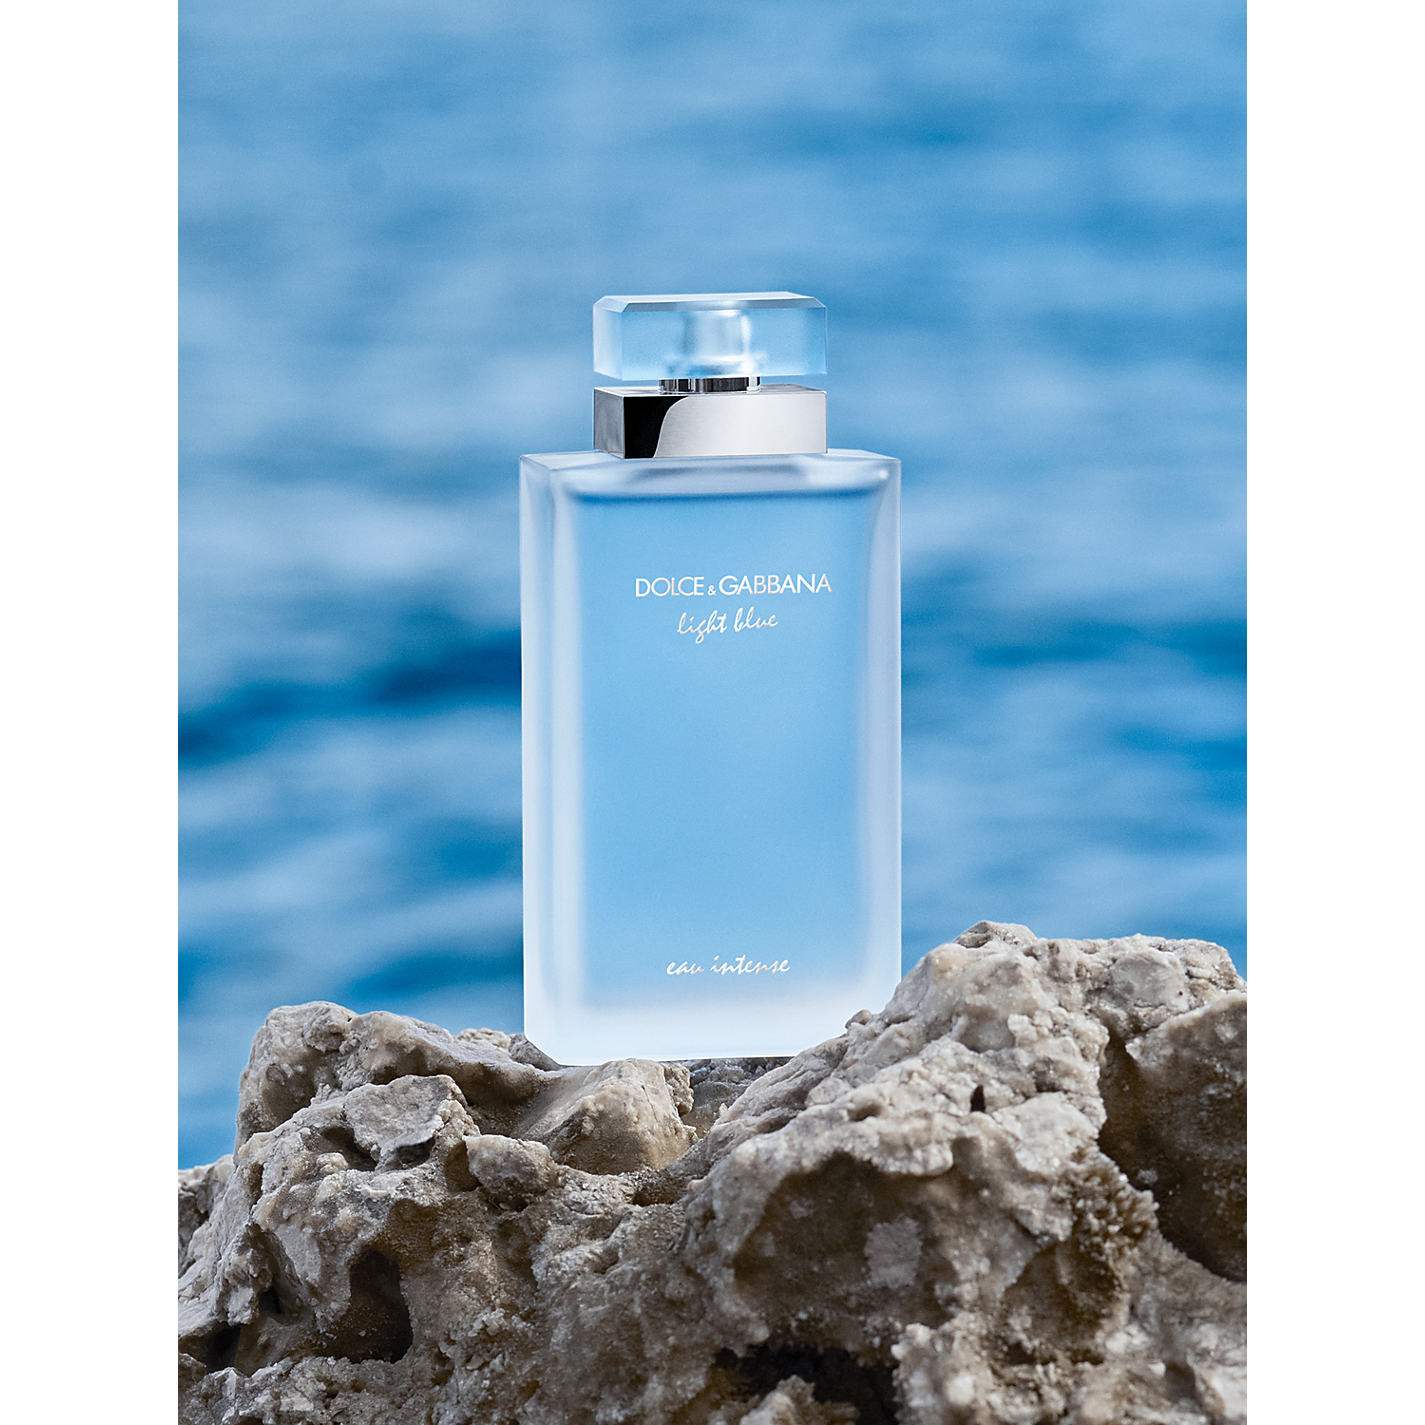 2017 05 dolce gabbana intense perfume review -  Buy Dolce Gabbana Light Blue Eau Intense Eau De Parfum Online At Johnlewis Com